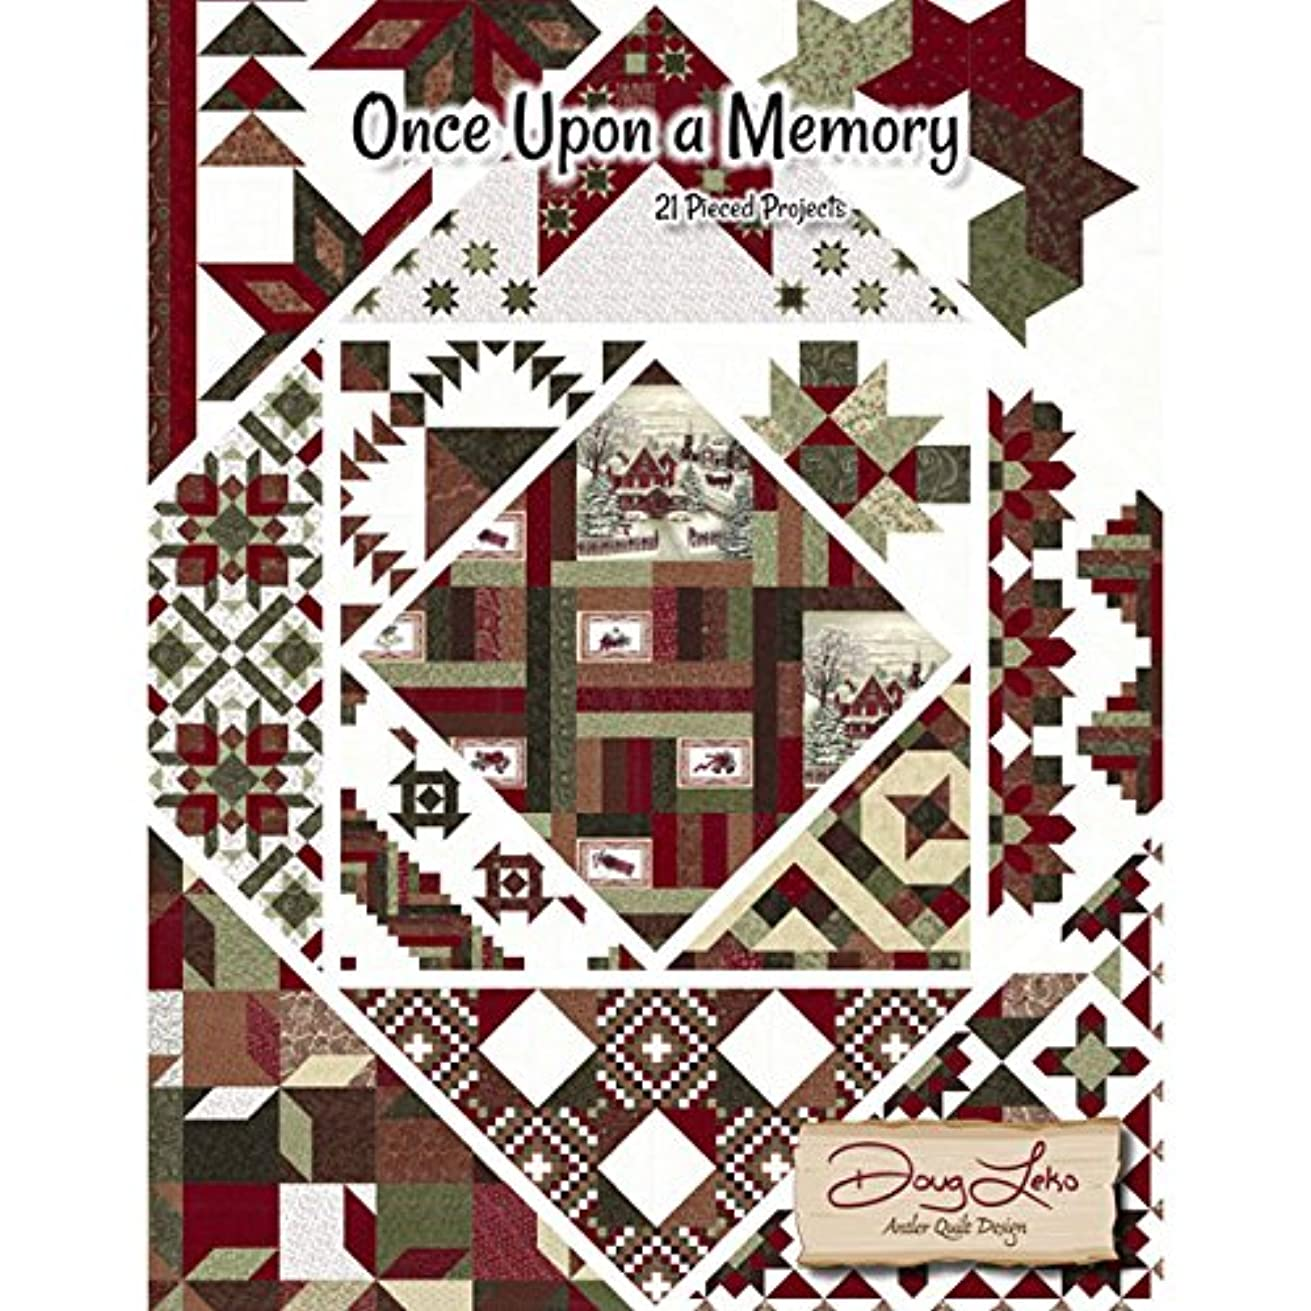 Once Upon A Memory: 21 Pieced Projects by Doug Leko of Antler Quilt Design